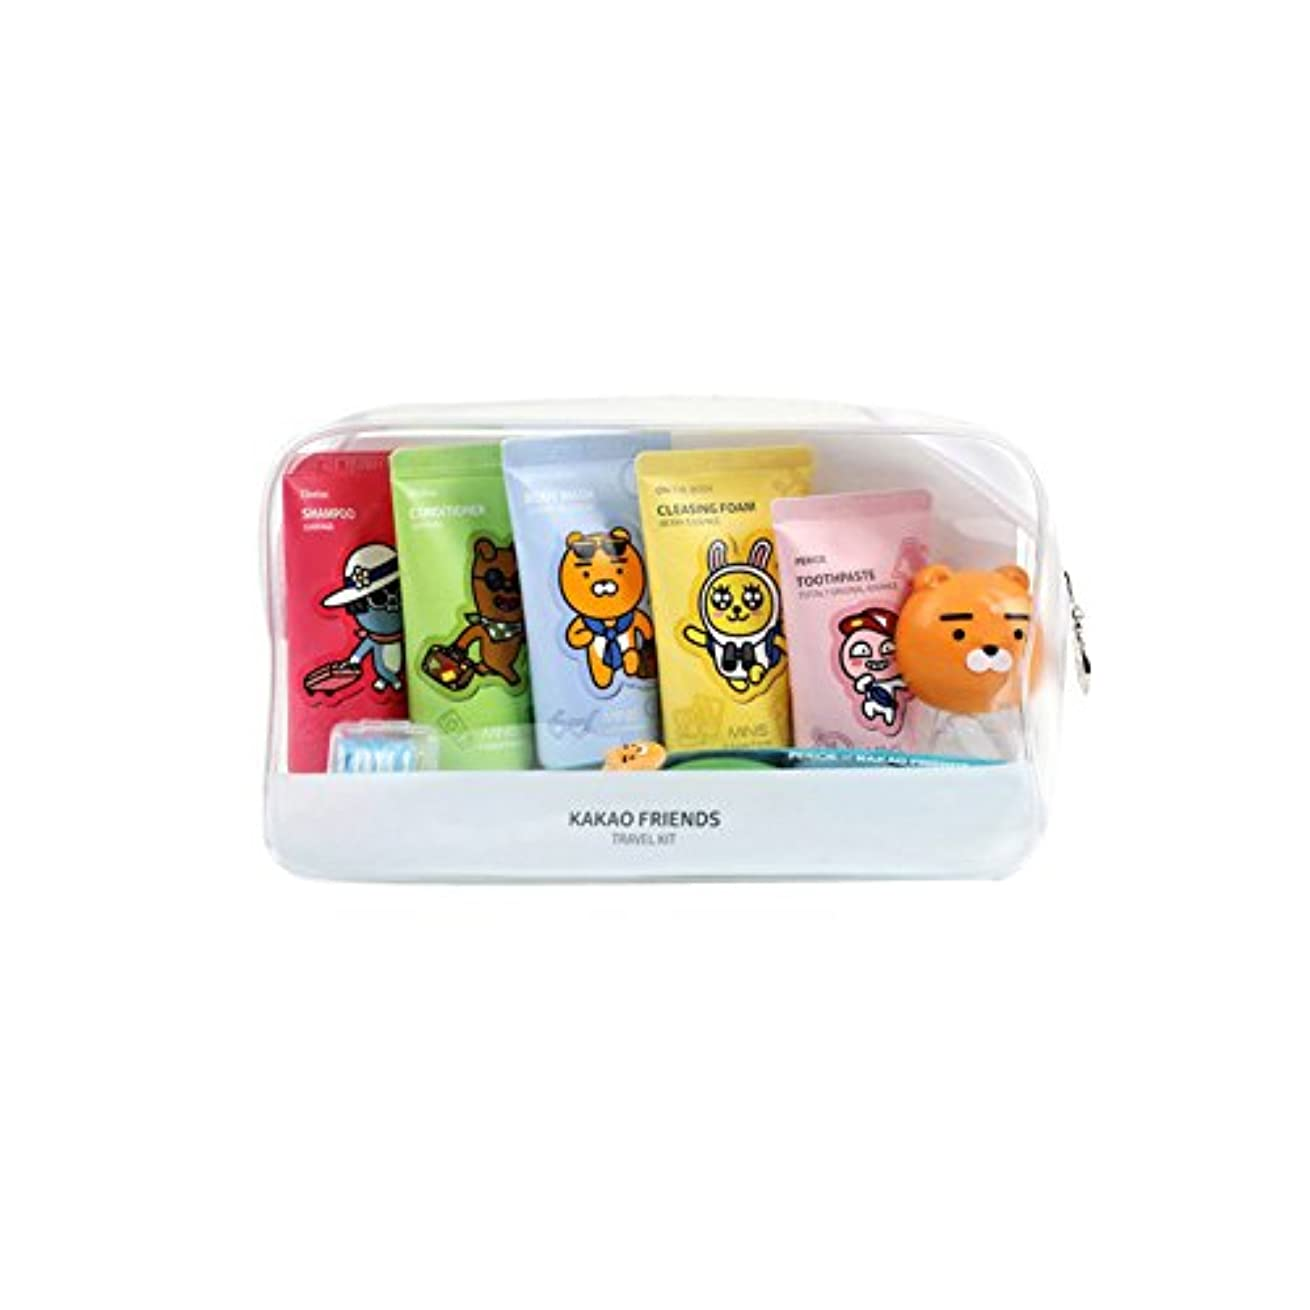 KAKAO Friends Convenience Travel Kit 7 Piece Shampoo,Conditioner,Body Wash,Cleansing Foam,Tooth Paste,Tooth Brush...